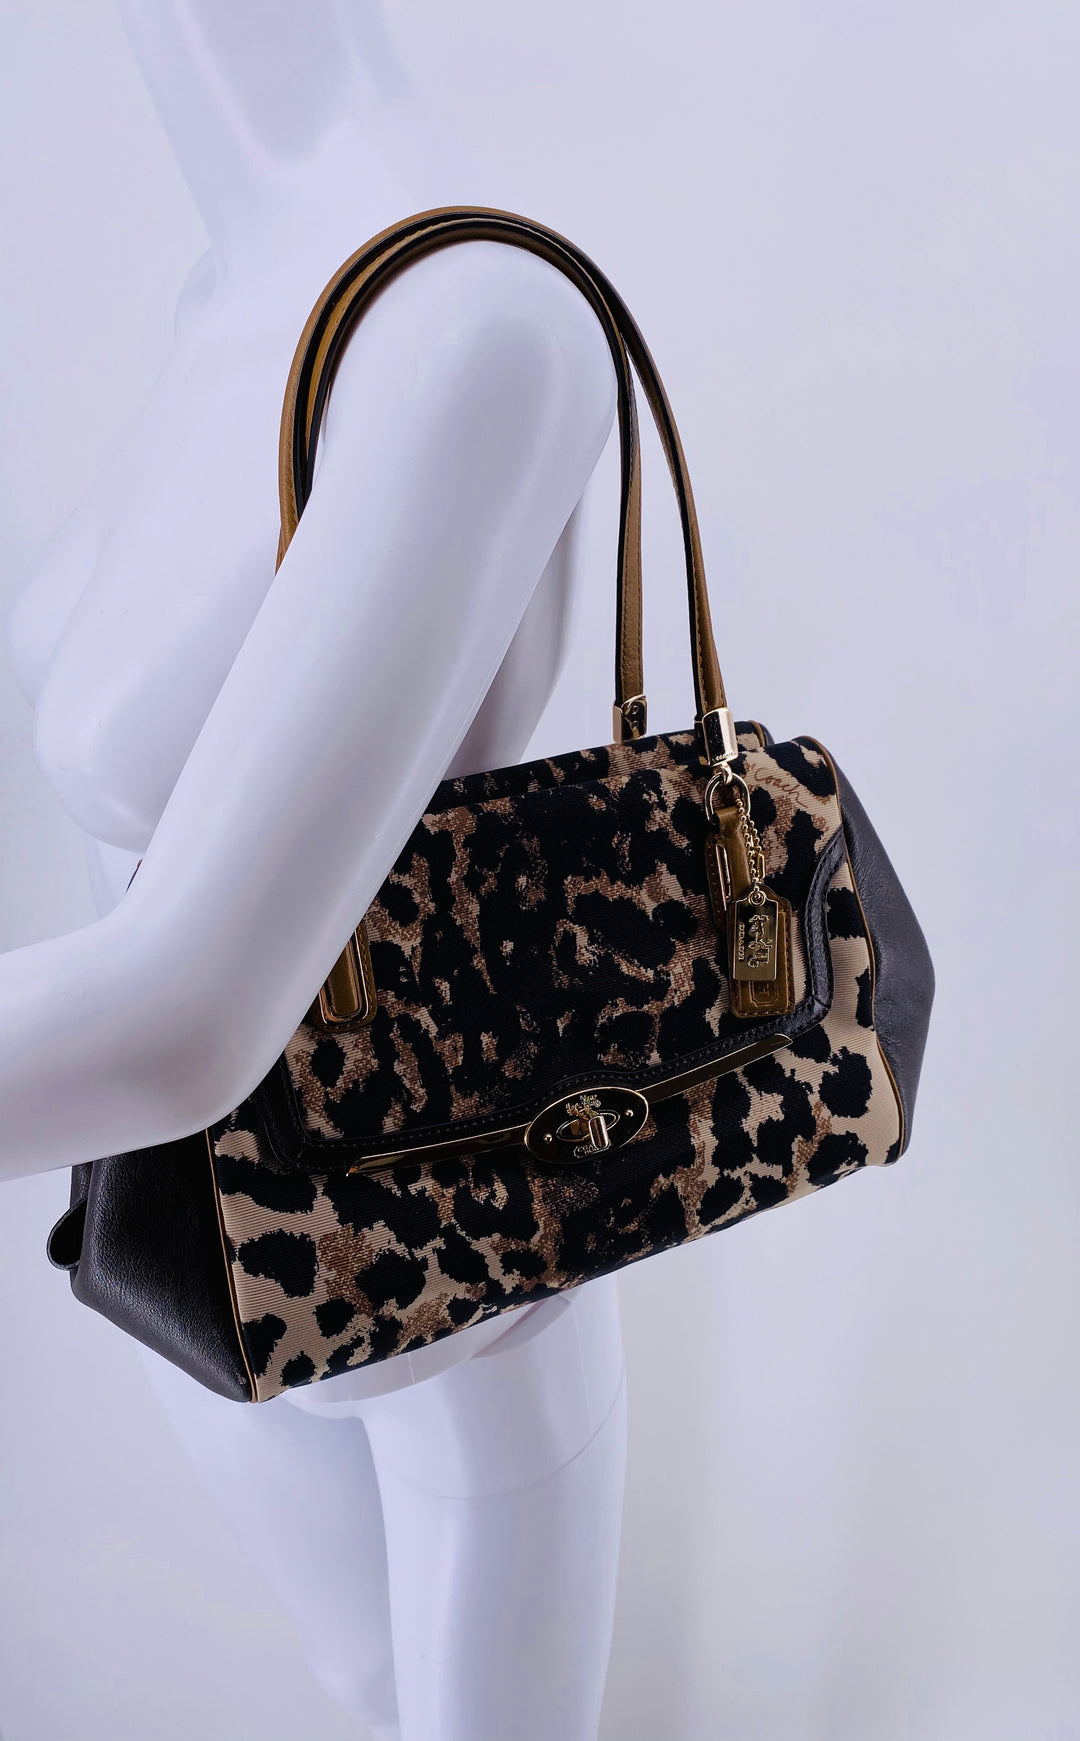 Primary Photo - BRAND: COACH , STYLE: HANDBAG , COLOR: ANIMAL PRINT , SIZE: MEDIUM , SKU: 105-3221-5536